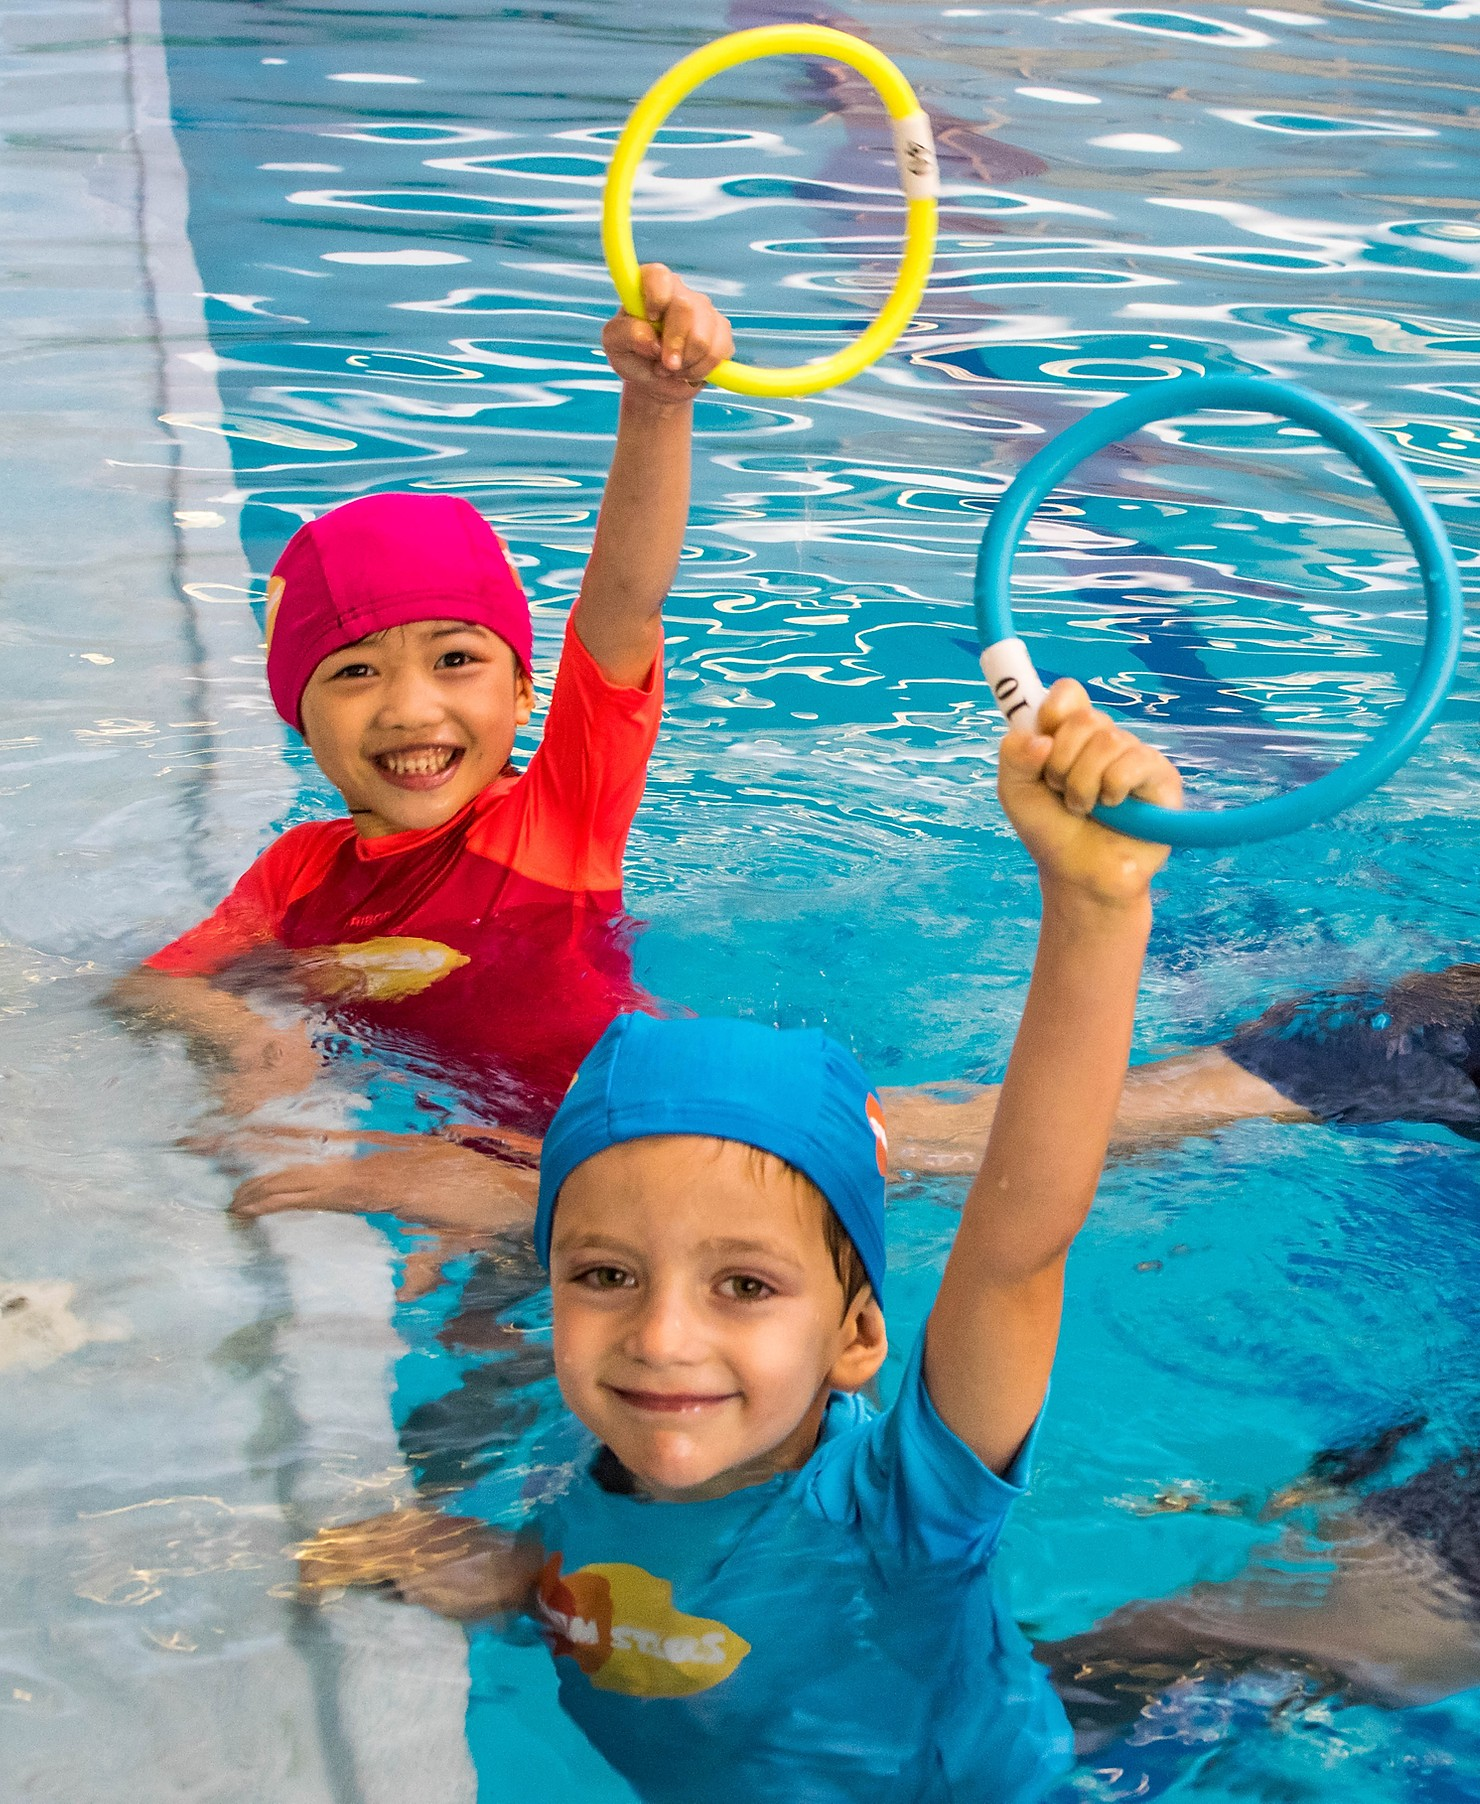 enfants Swim Stars piscine